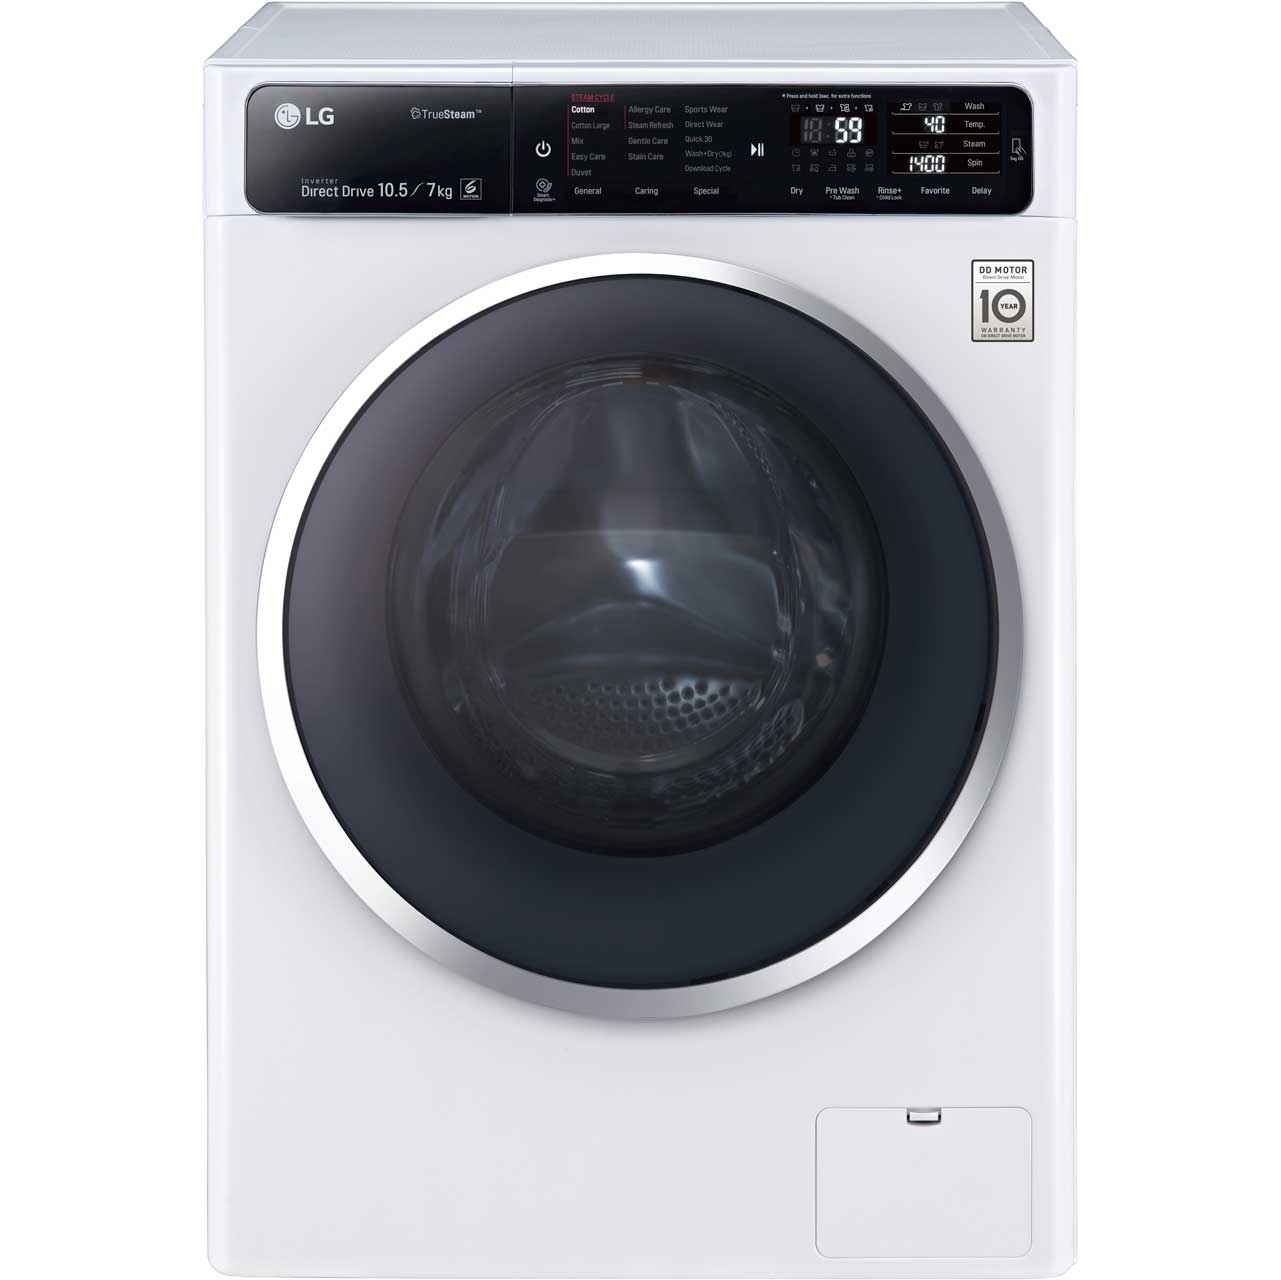 LG Eco Hybrid™ With TrueSteam™ FH4U1JBH2N 10.5Kg / 7Kg Washer Dryer with 1400 rpm - White